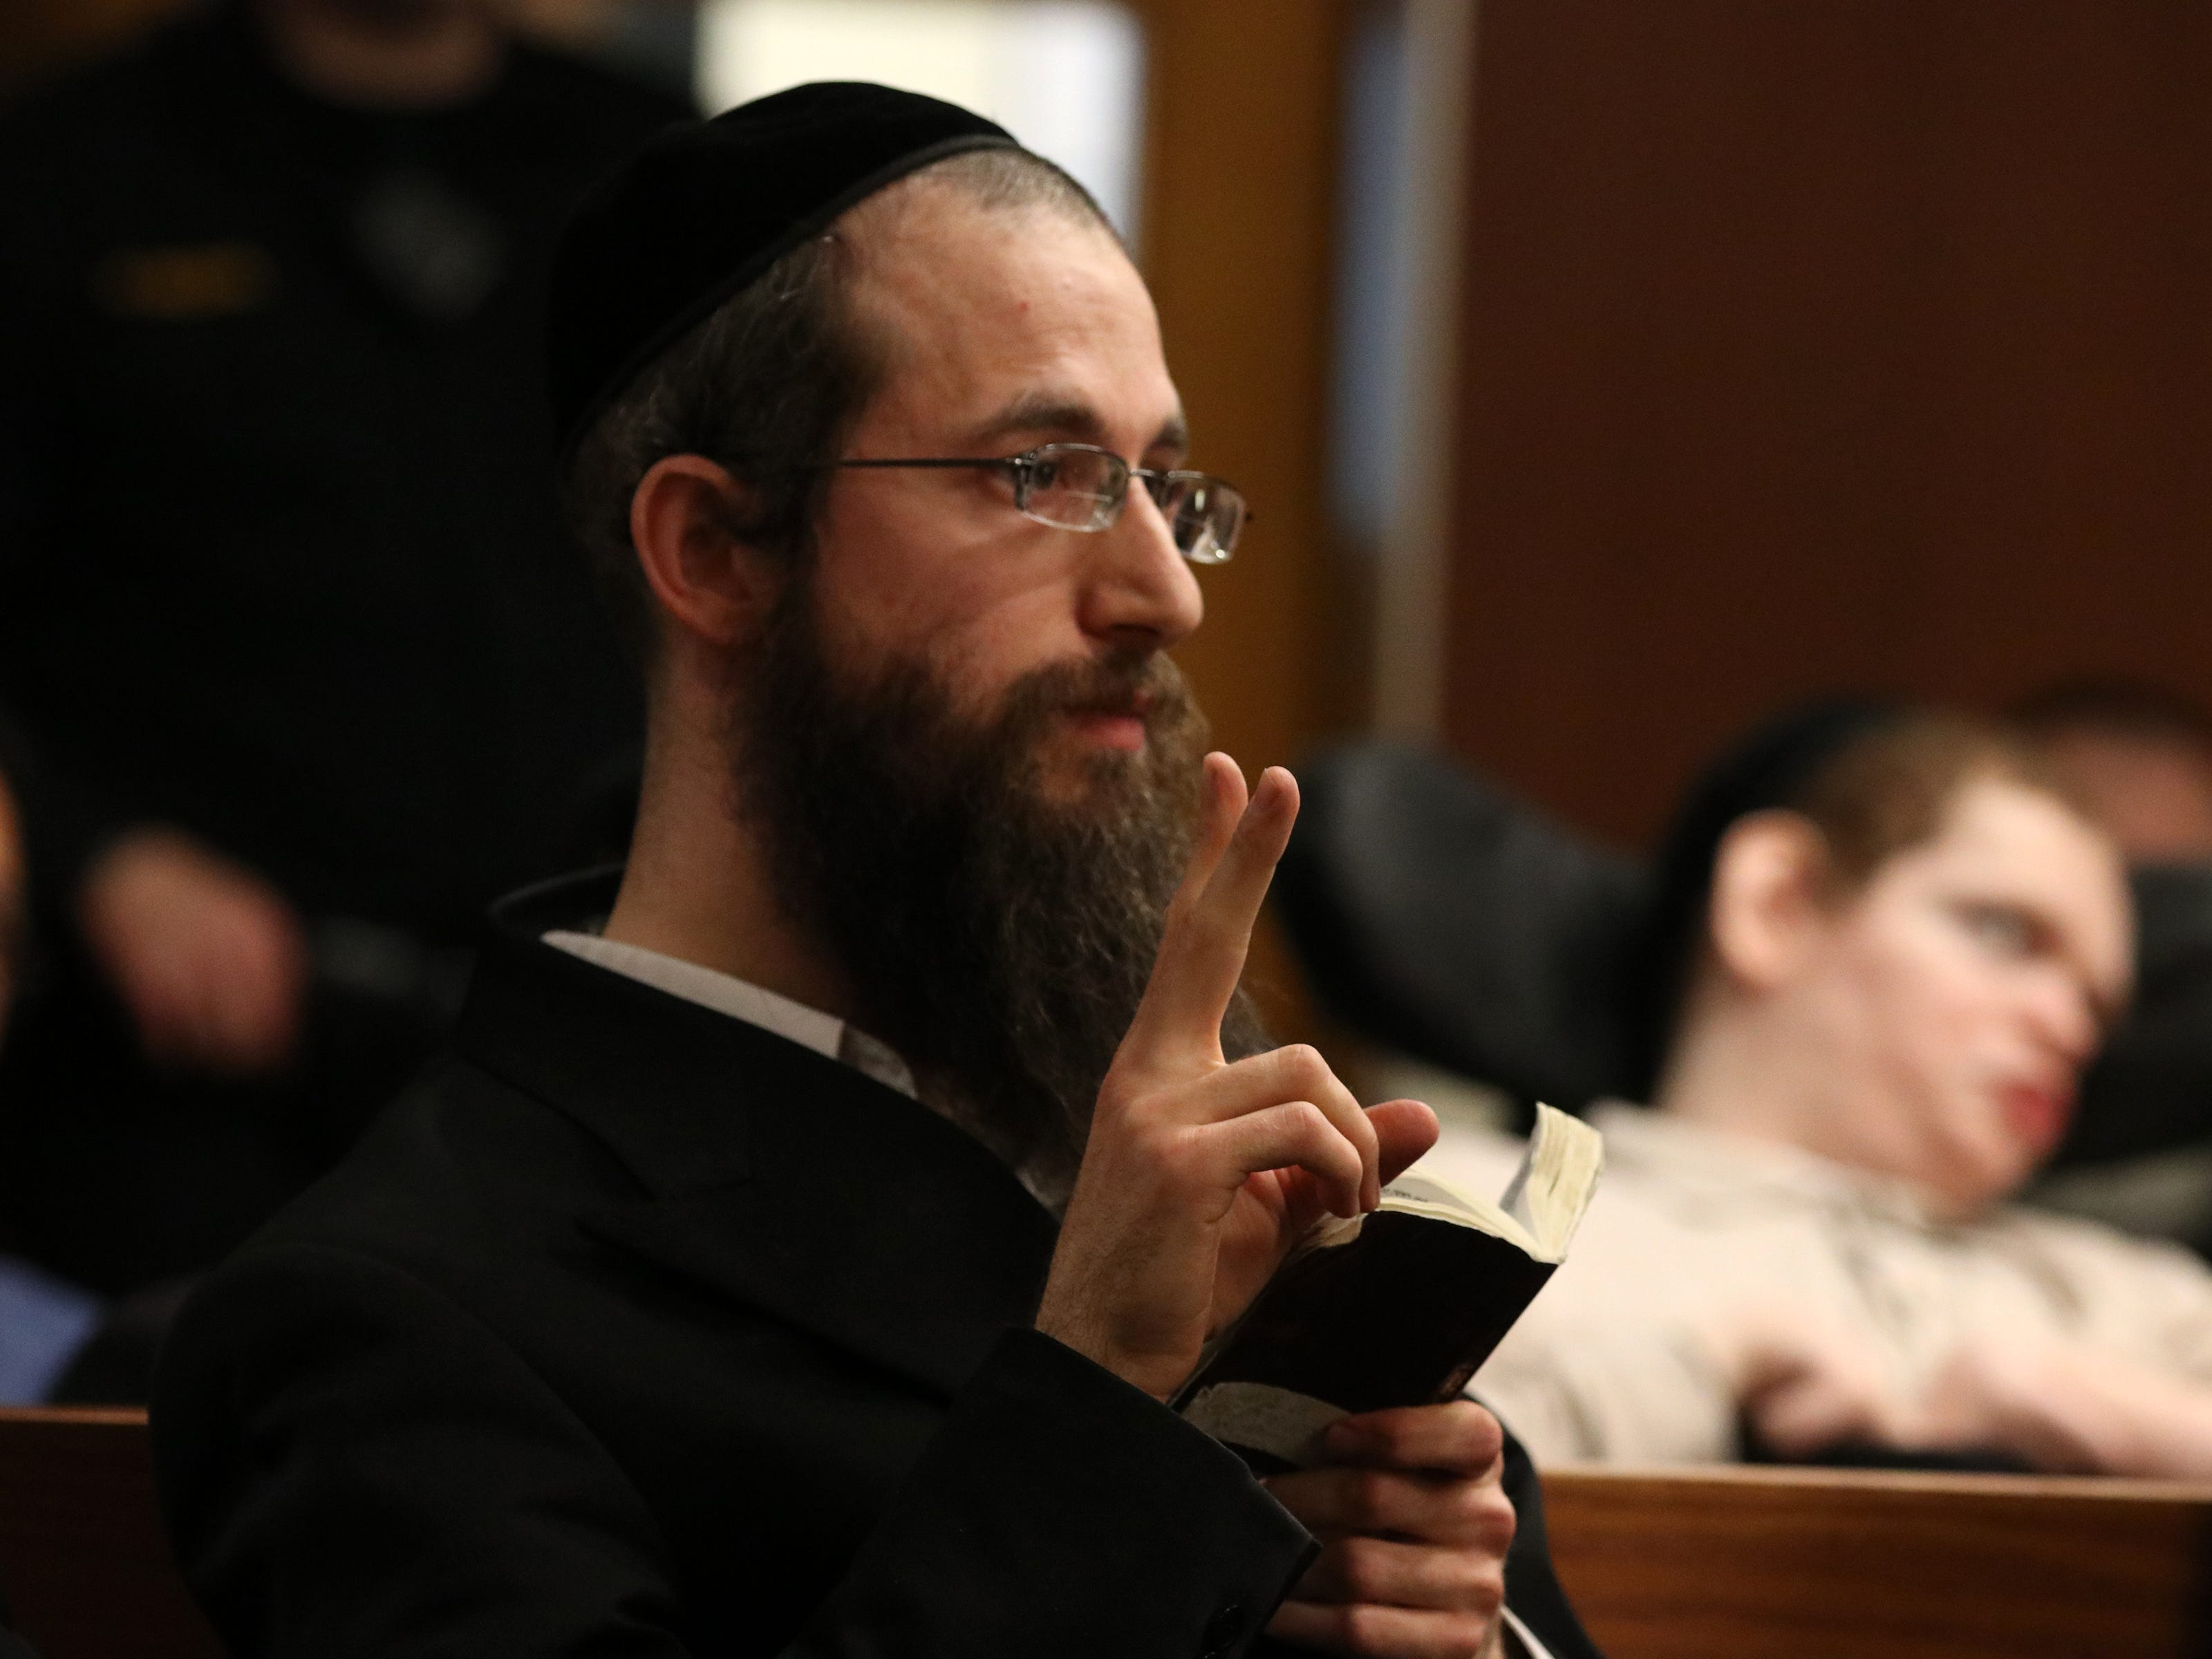 Supporters react as Rabbi Osher Eisemann, the founder of Lakewood special education school the School for Children with Hidden Intelligence who was found guilty of two criminal counts after a trial and faces prison time for the crimes, is sentenced before Judge Benjamin S. Bucca, Jr. at the Middlesex County Courthouse in New Brunswick,NJ Monday, April 29, 2019.